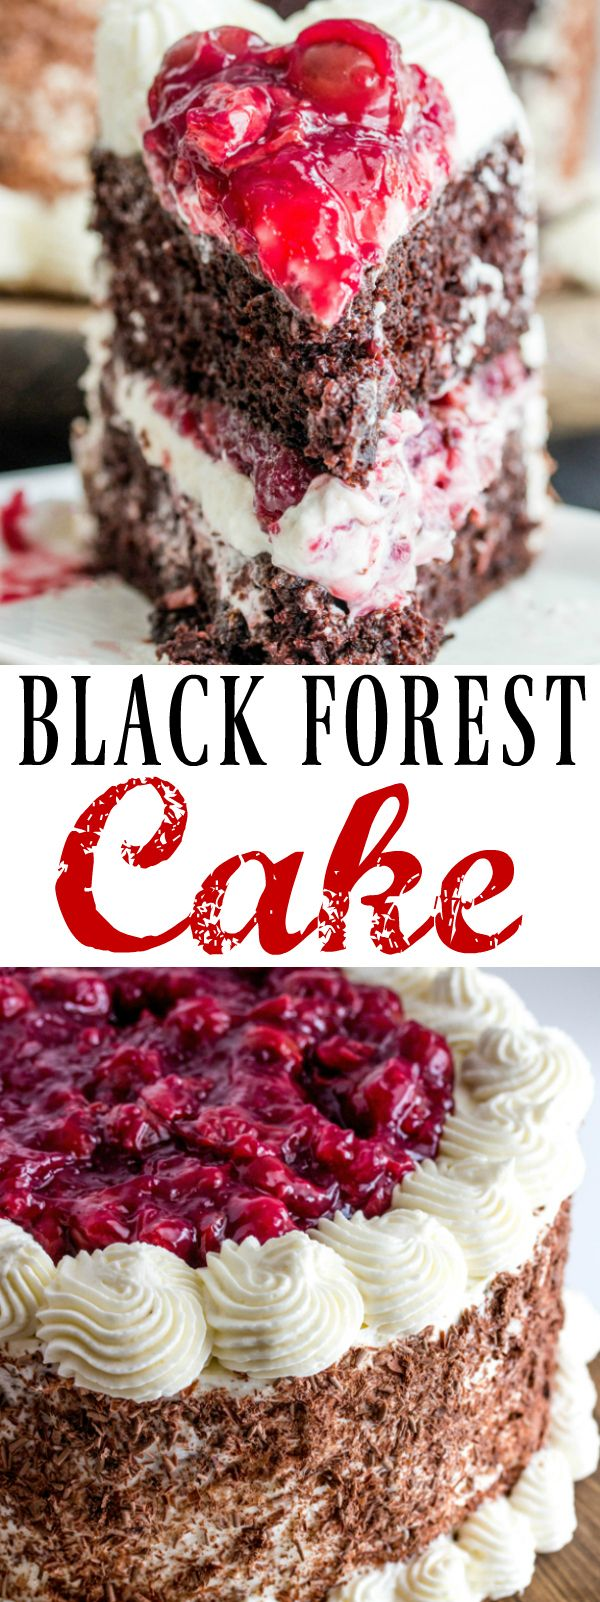 Moist chocolate cake is filled with a fluffy white frosting and cherries and covered and topped with more frosting, chocolate and even more cherries making this Black Forest Cake one addicting treat.